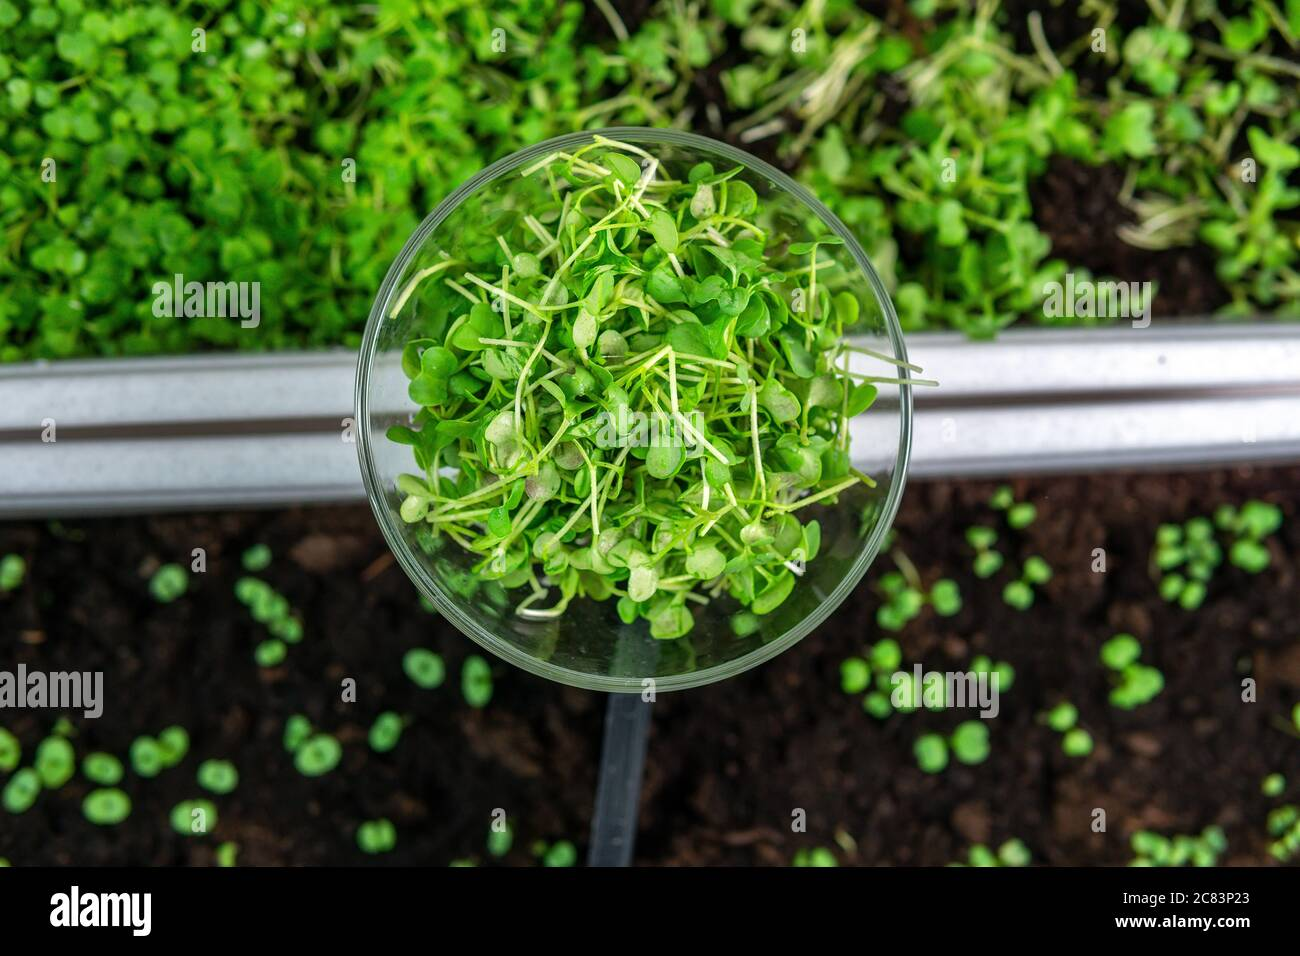 micro greens or sprouts of raw live sprouting vegetables sprout from organic plant seeds. growing plants at home, diet, healthy food Stock Photo